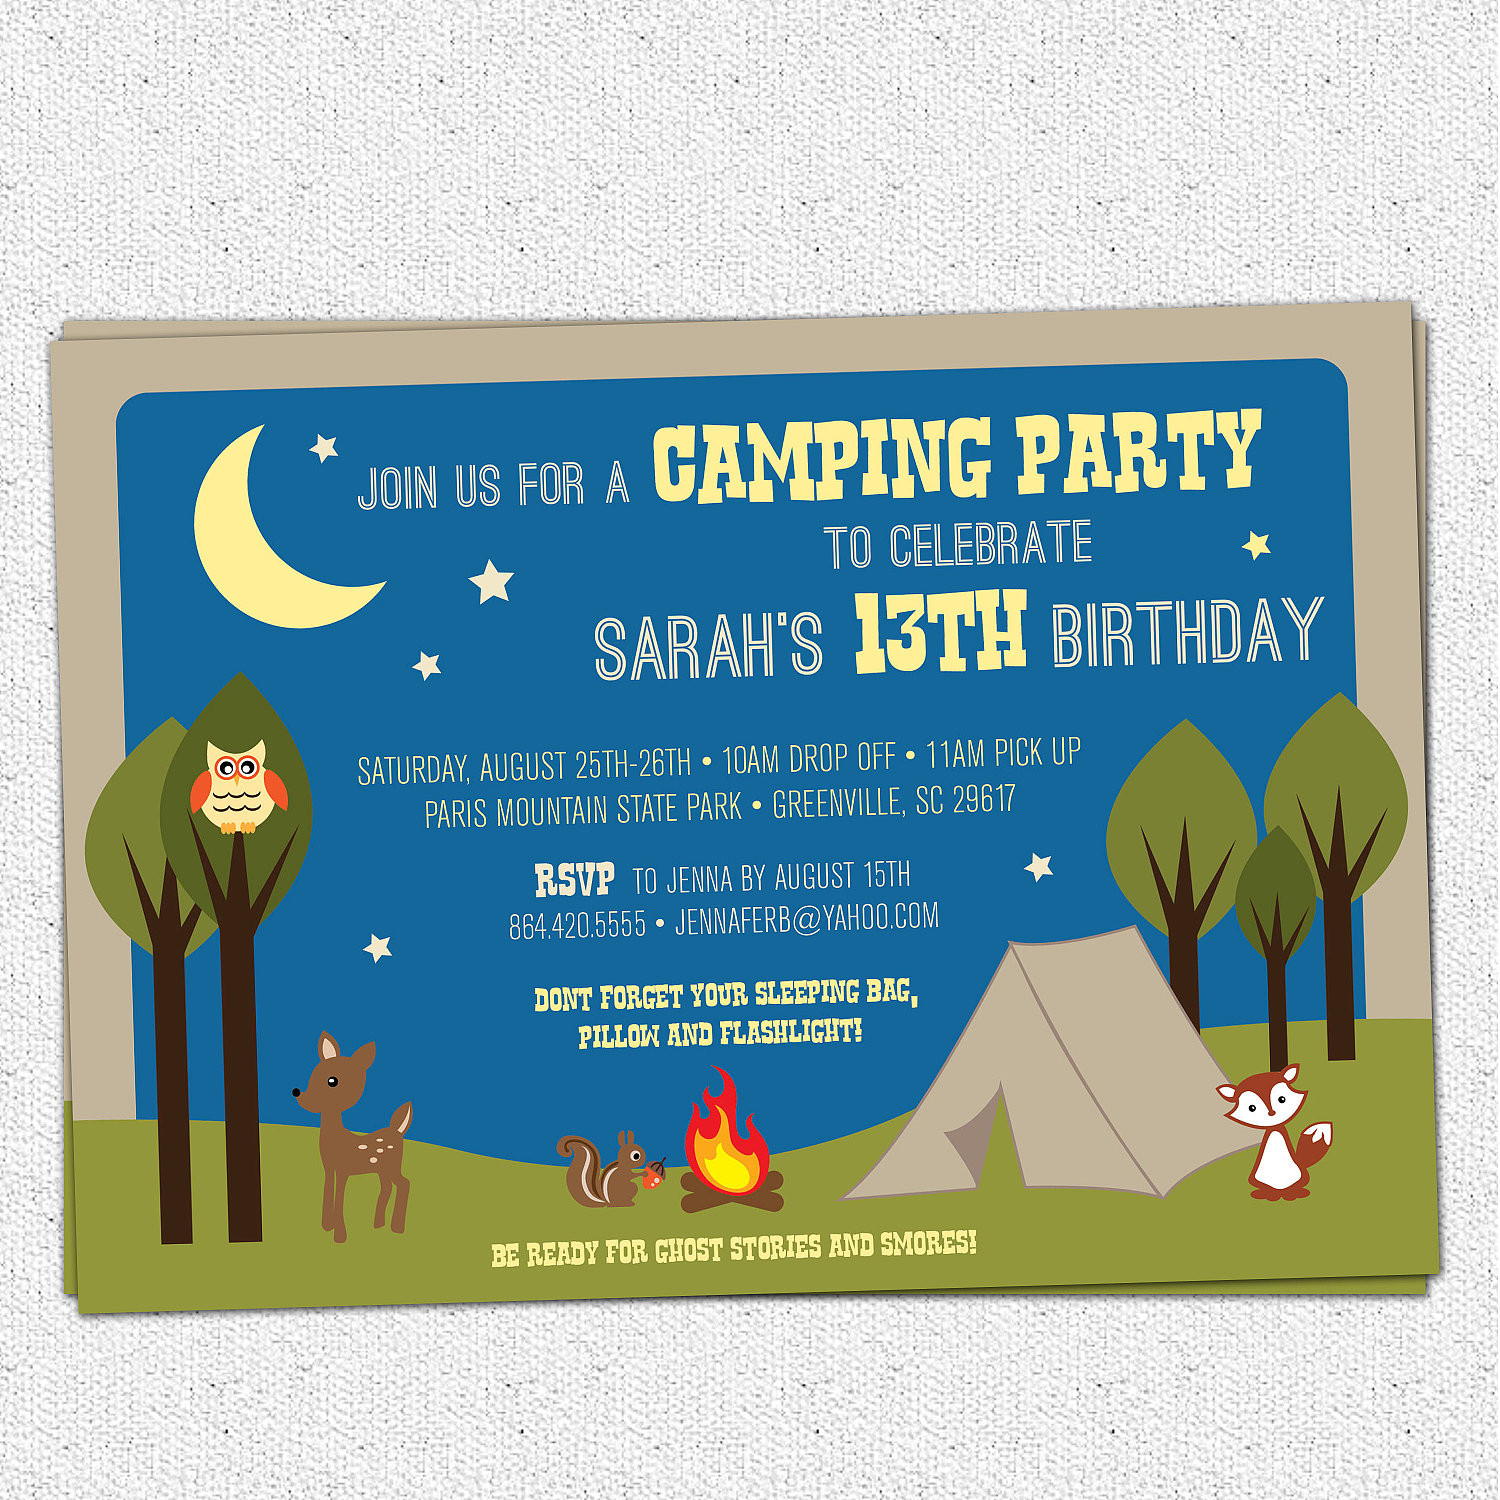 Best ideas about Camping Birthday Party Invitations . Save or Pin Camping Party Invitation Birthday Summer Woodland Animals Now.